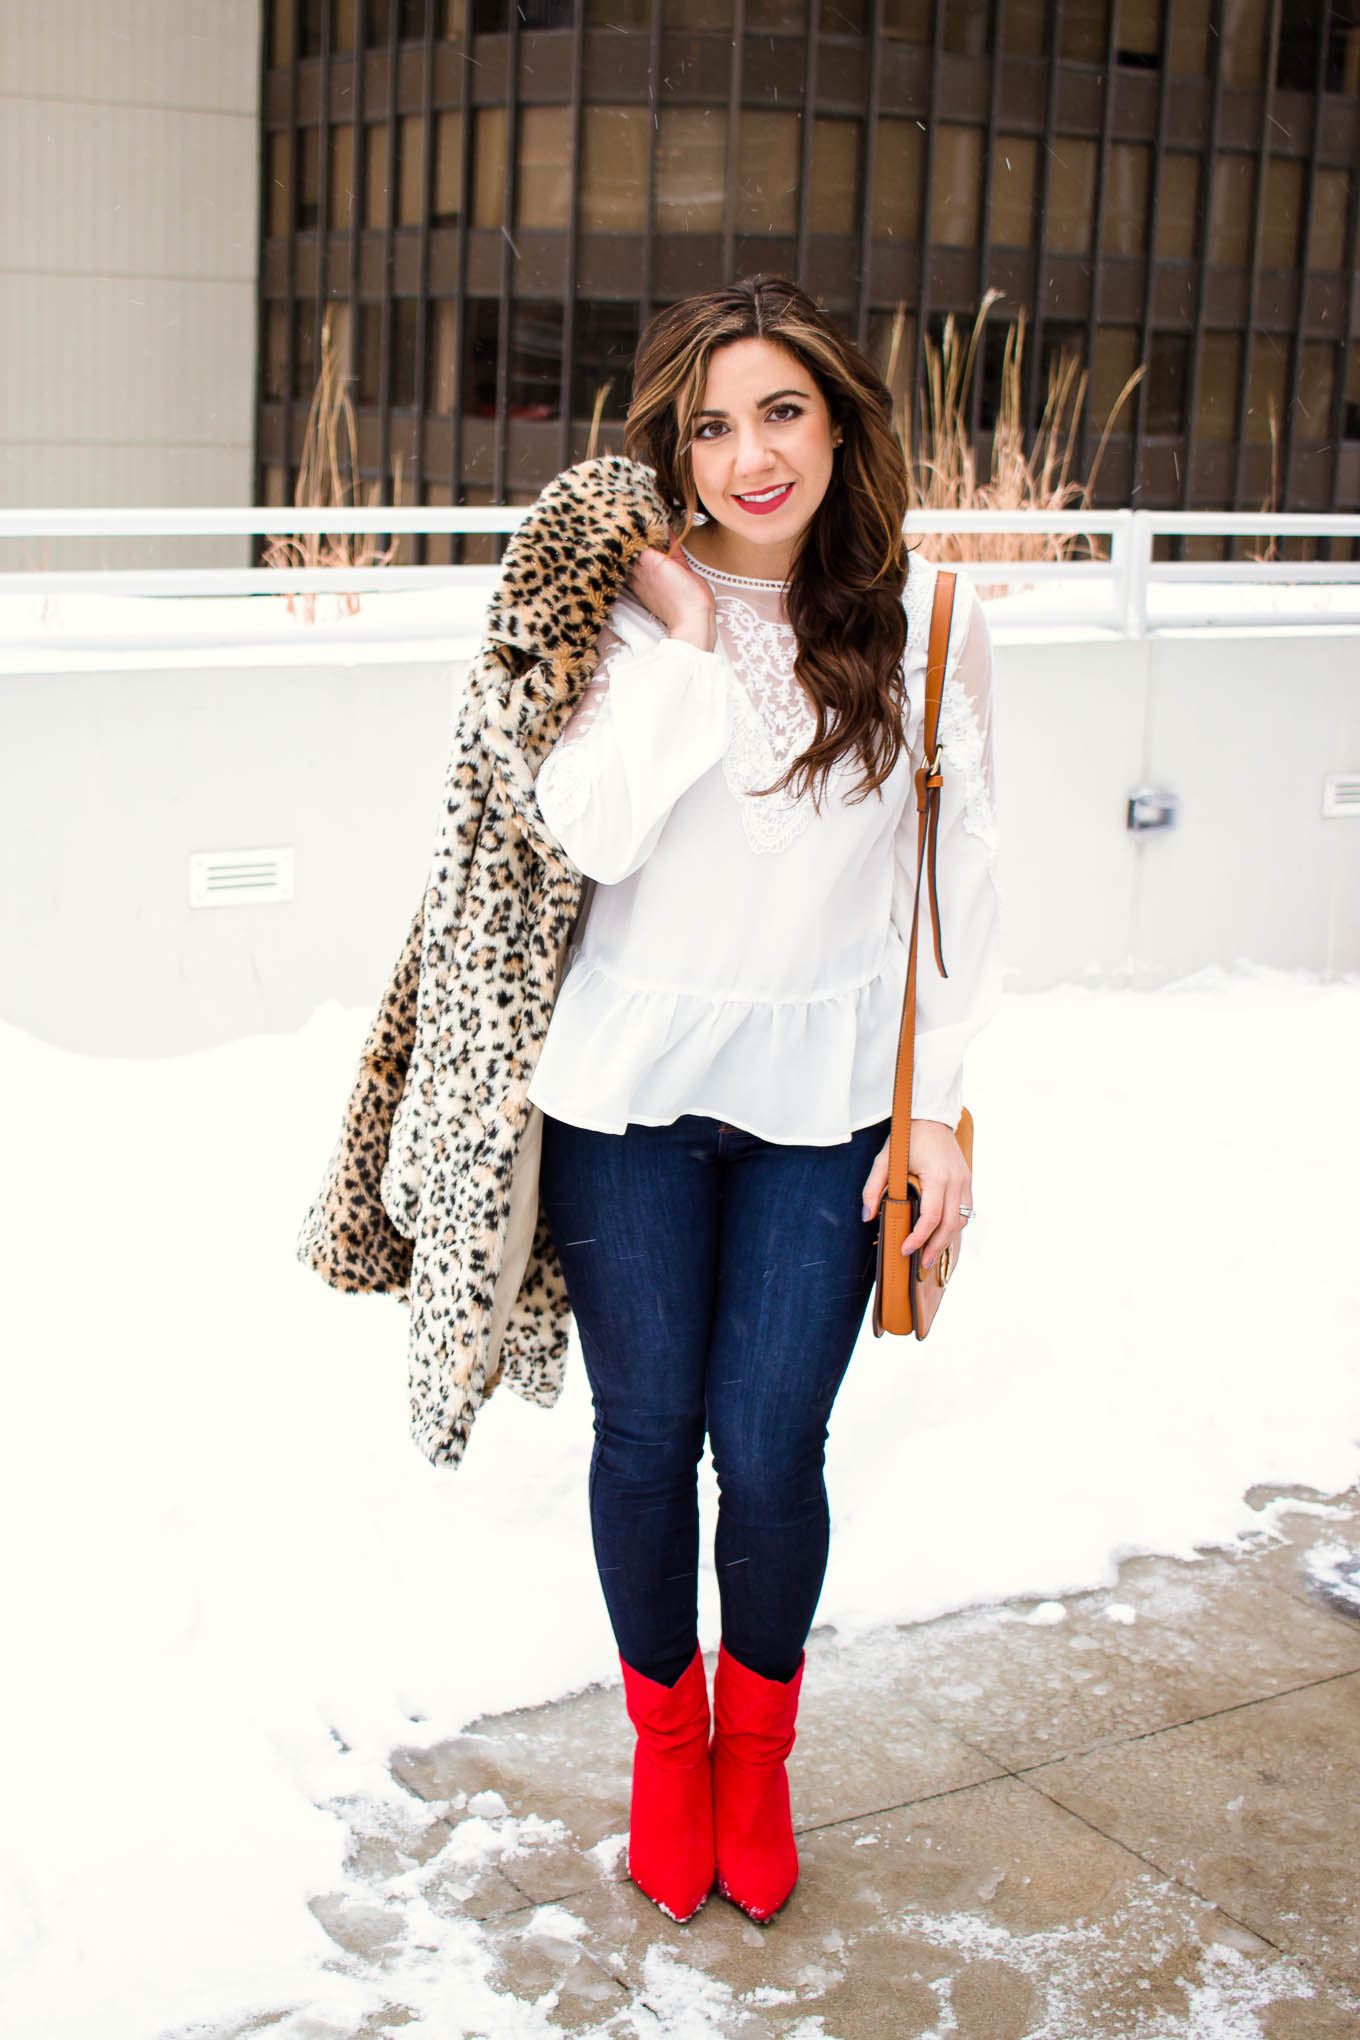 Lifestyle blogger Roxanne of Glass of Glam wearing a white lace Shein top, leopard coat, Mott and Bow denim, and red booties. - SheIn White Lace Top outfit by popular Chicago fashion blogger Glass of Glam